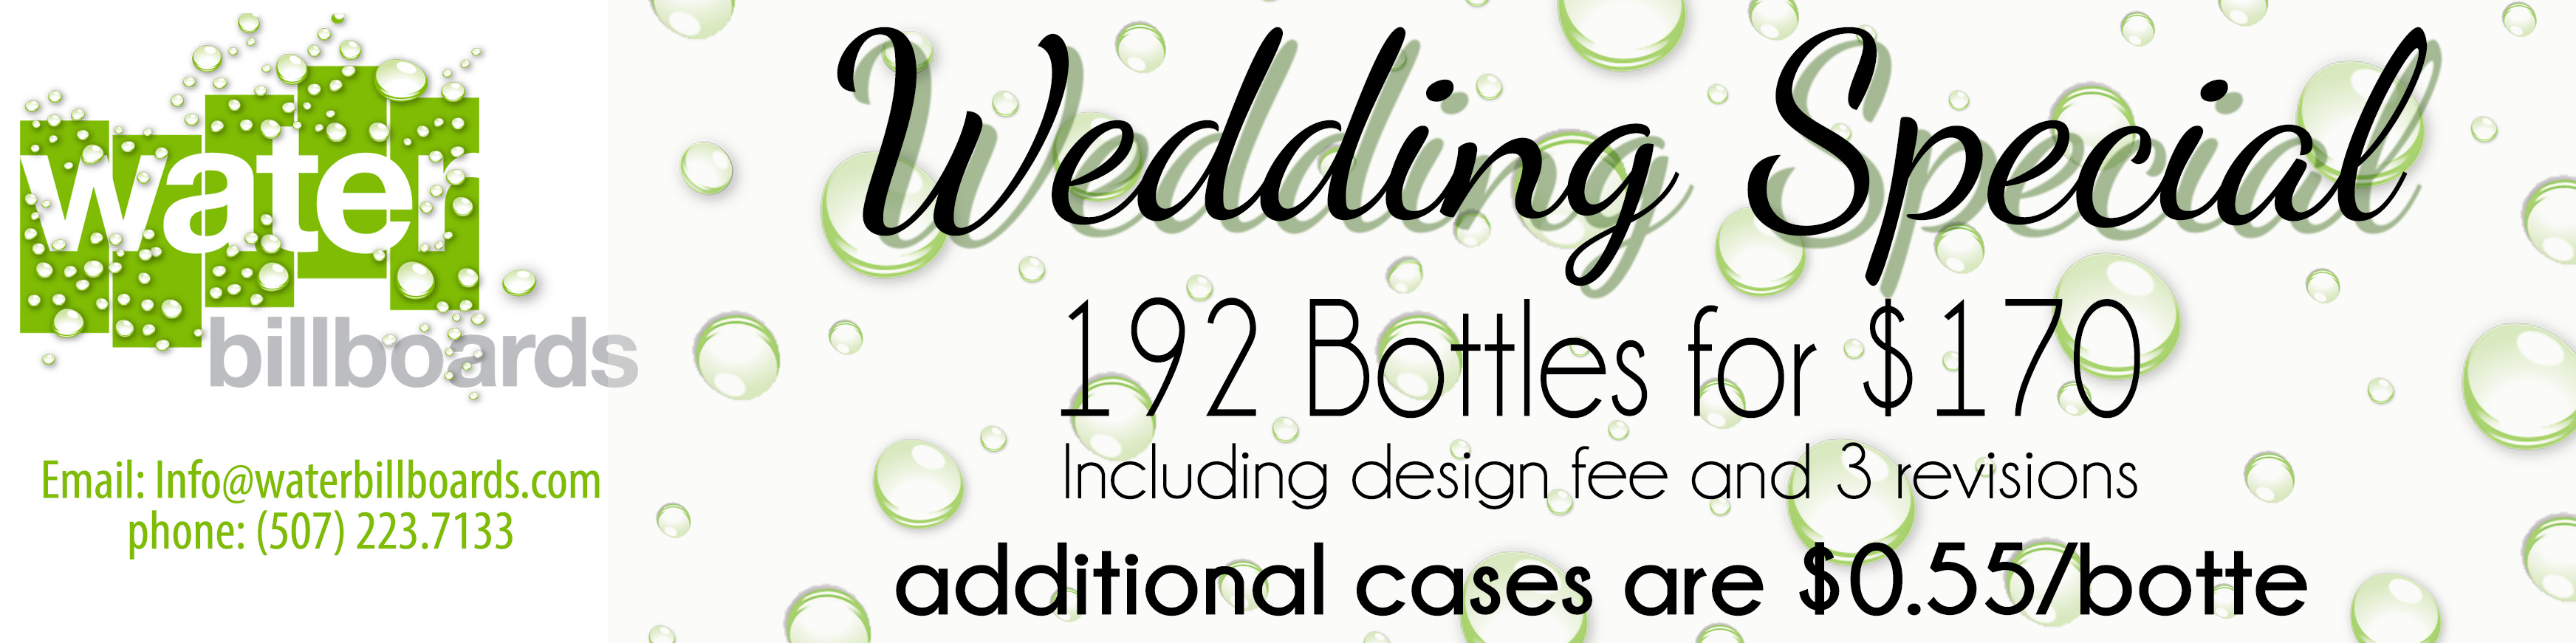 Wedding Special banner